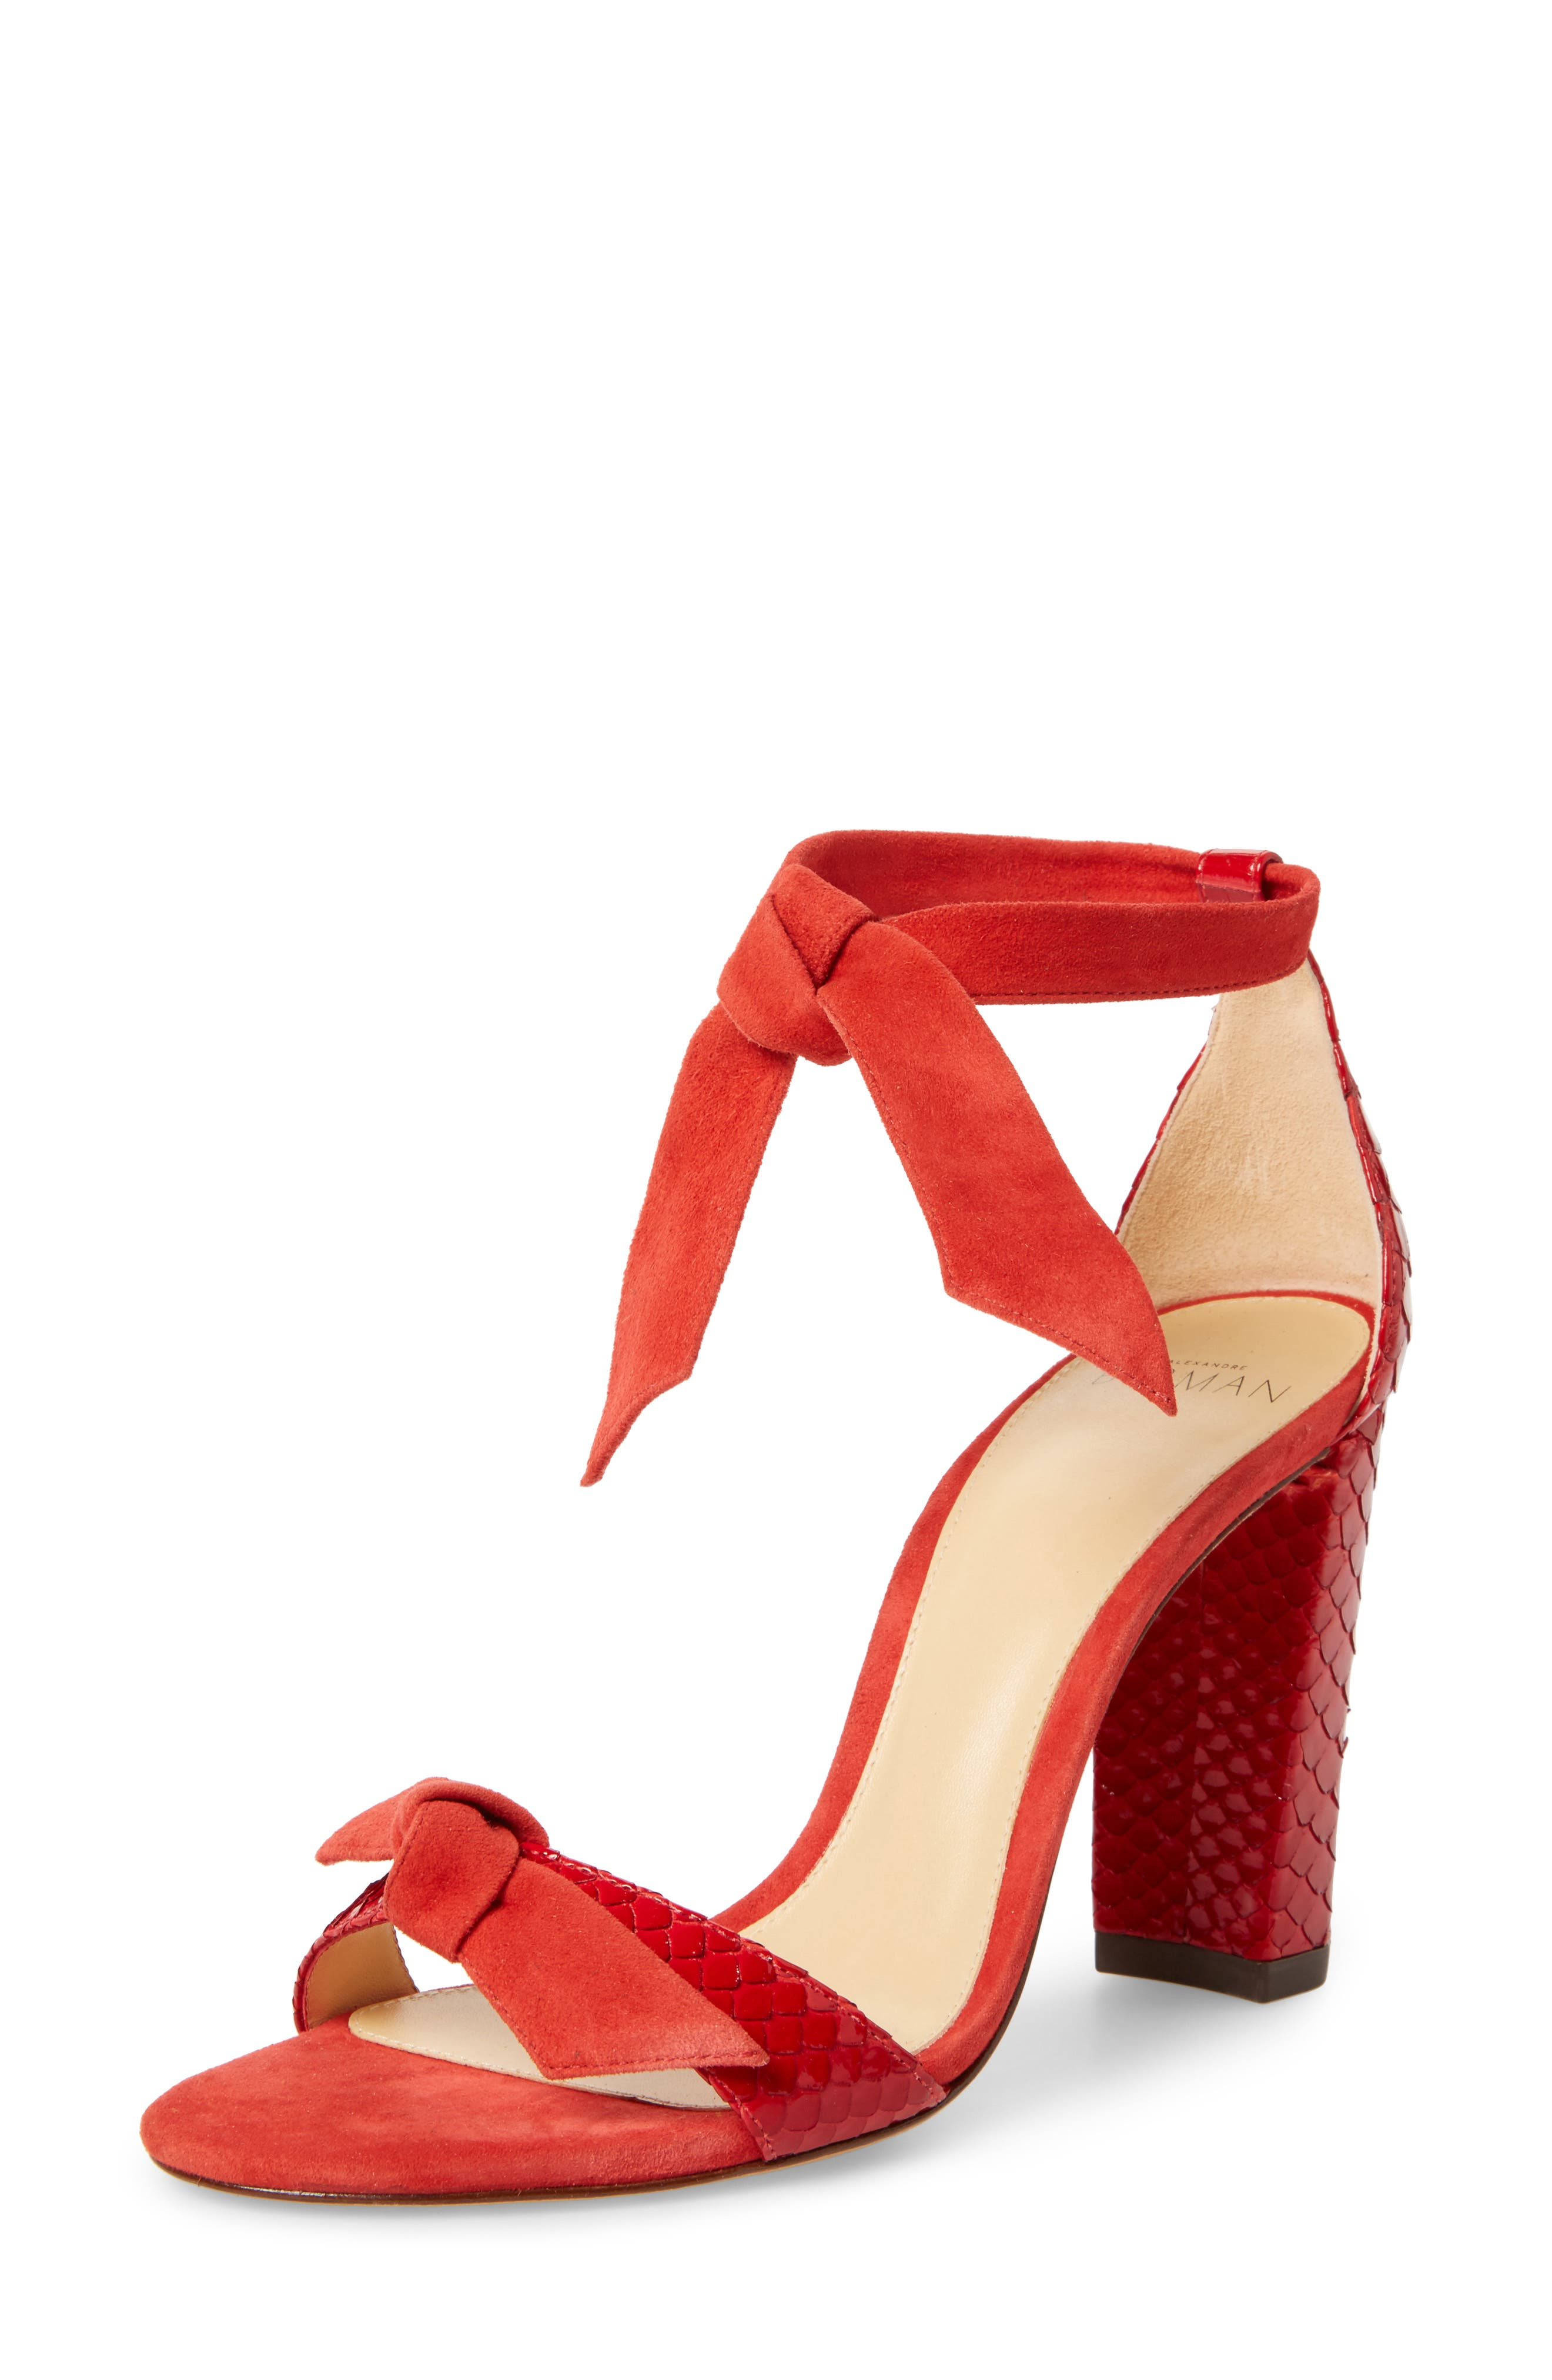 Clarita Genuine Python Ankle Tie Sandal,                             Main thumbnail 1, color,                             Flame Red